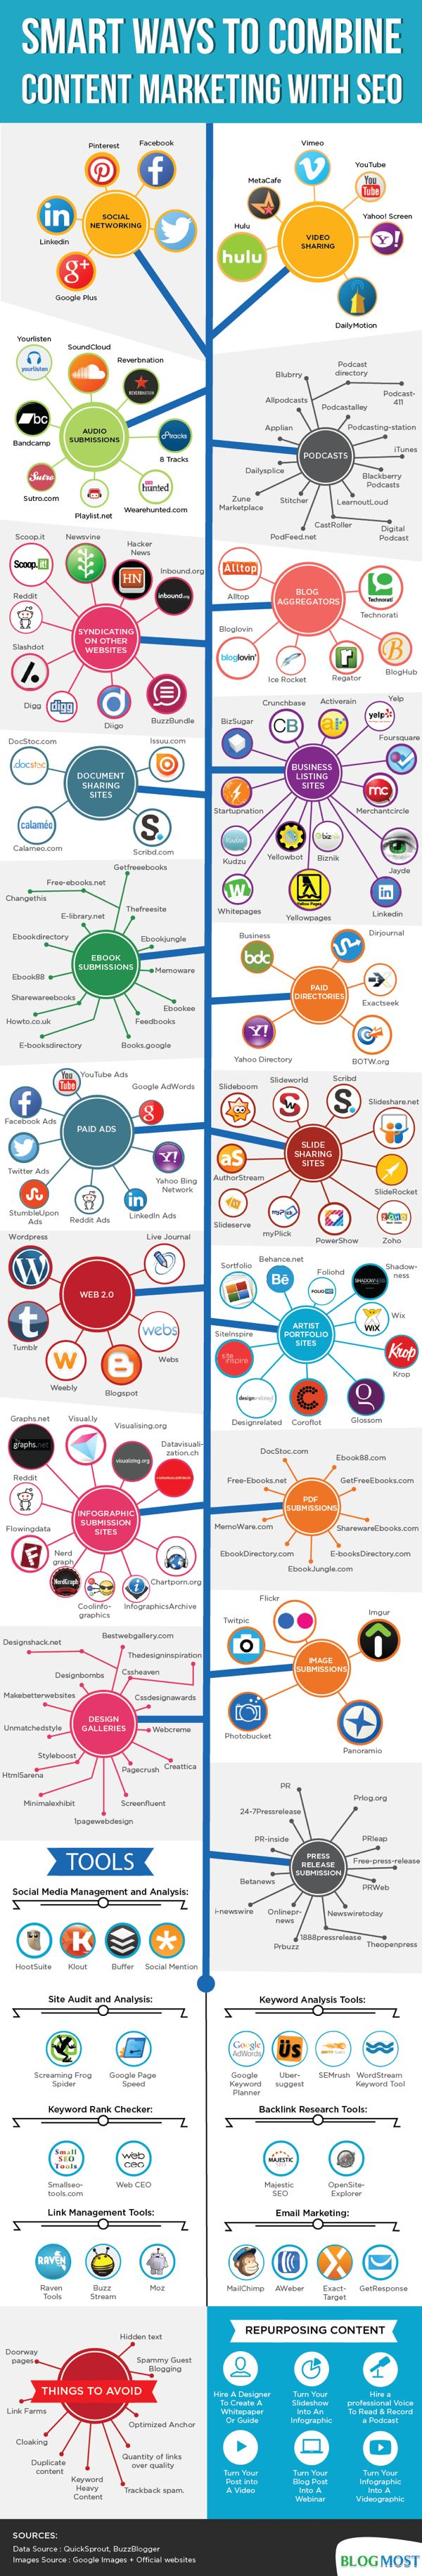 Smart Ways to Combine Content Marketing With SEO infographic